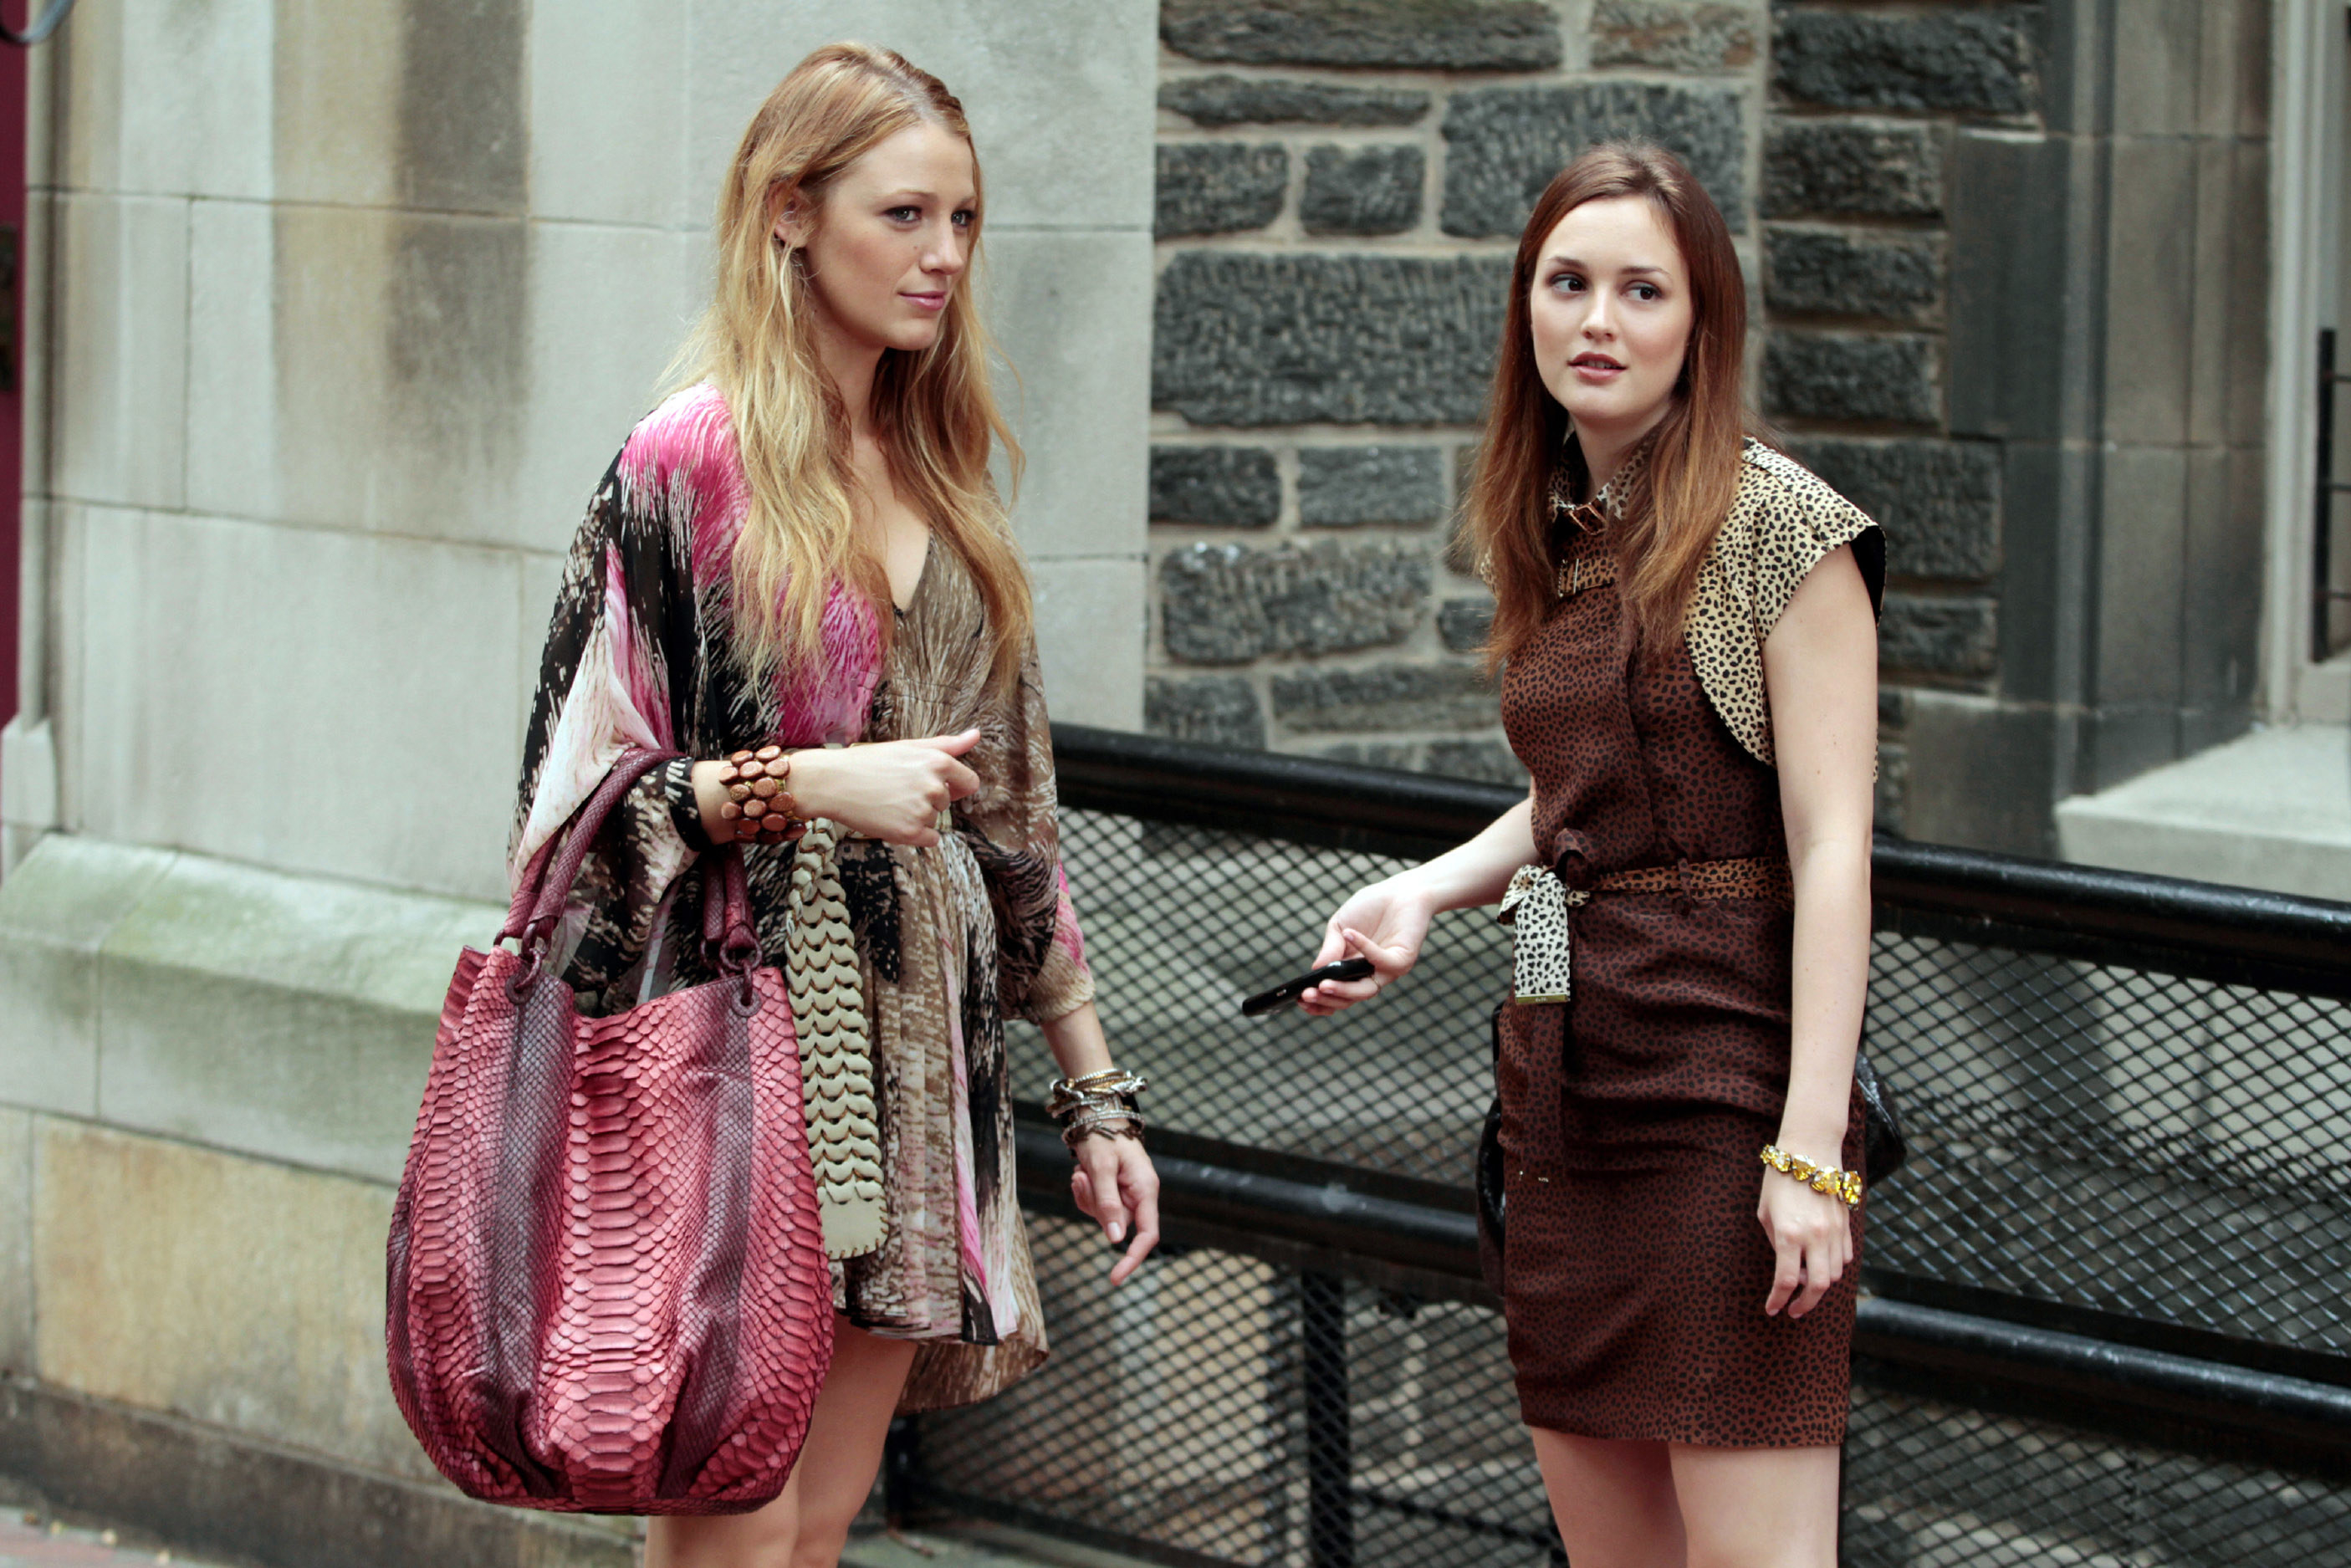 Blake Lively and Leighton Meester in an episode of Gossip Girl